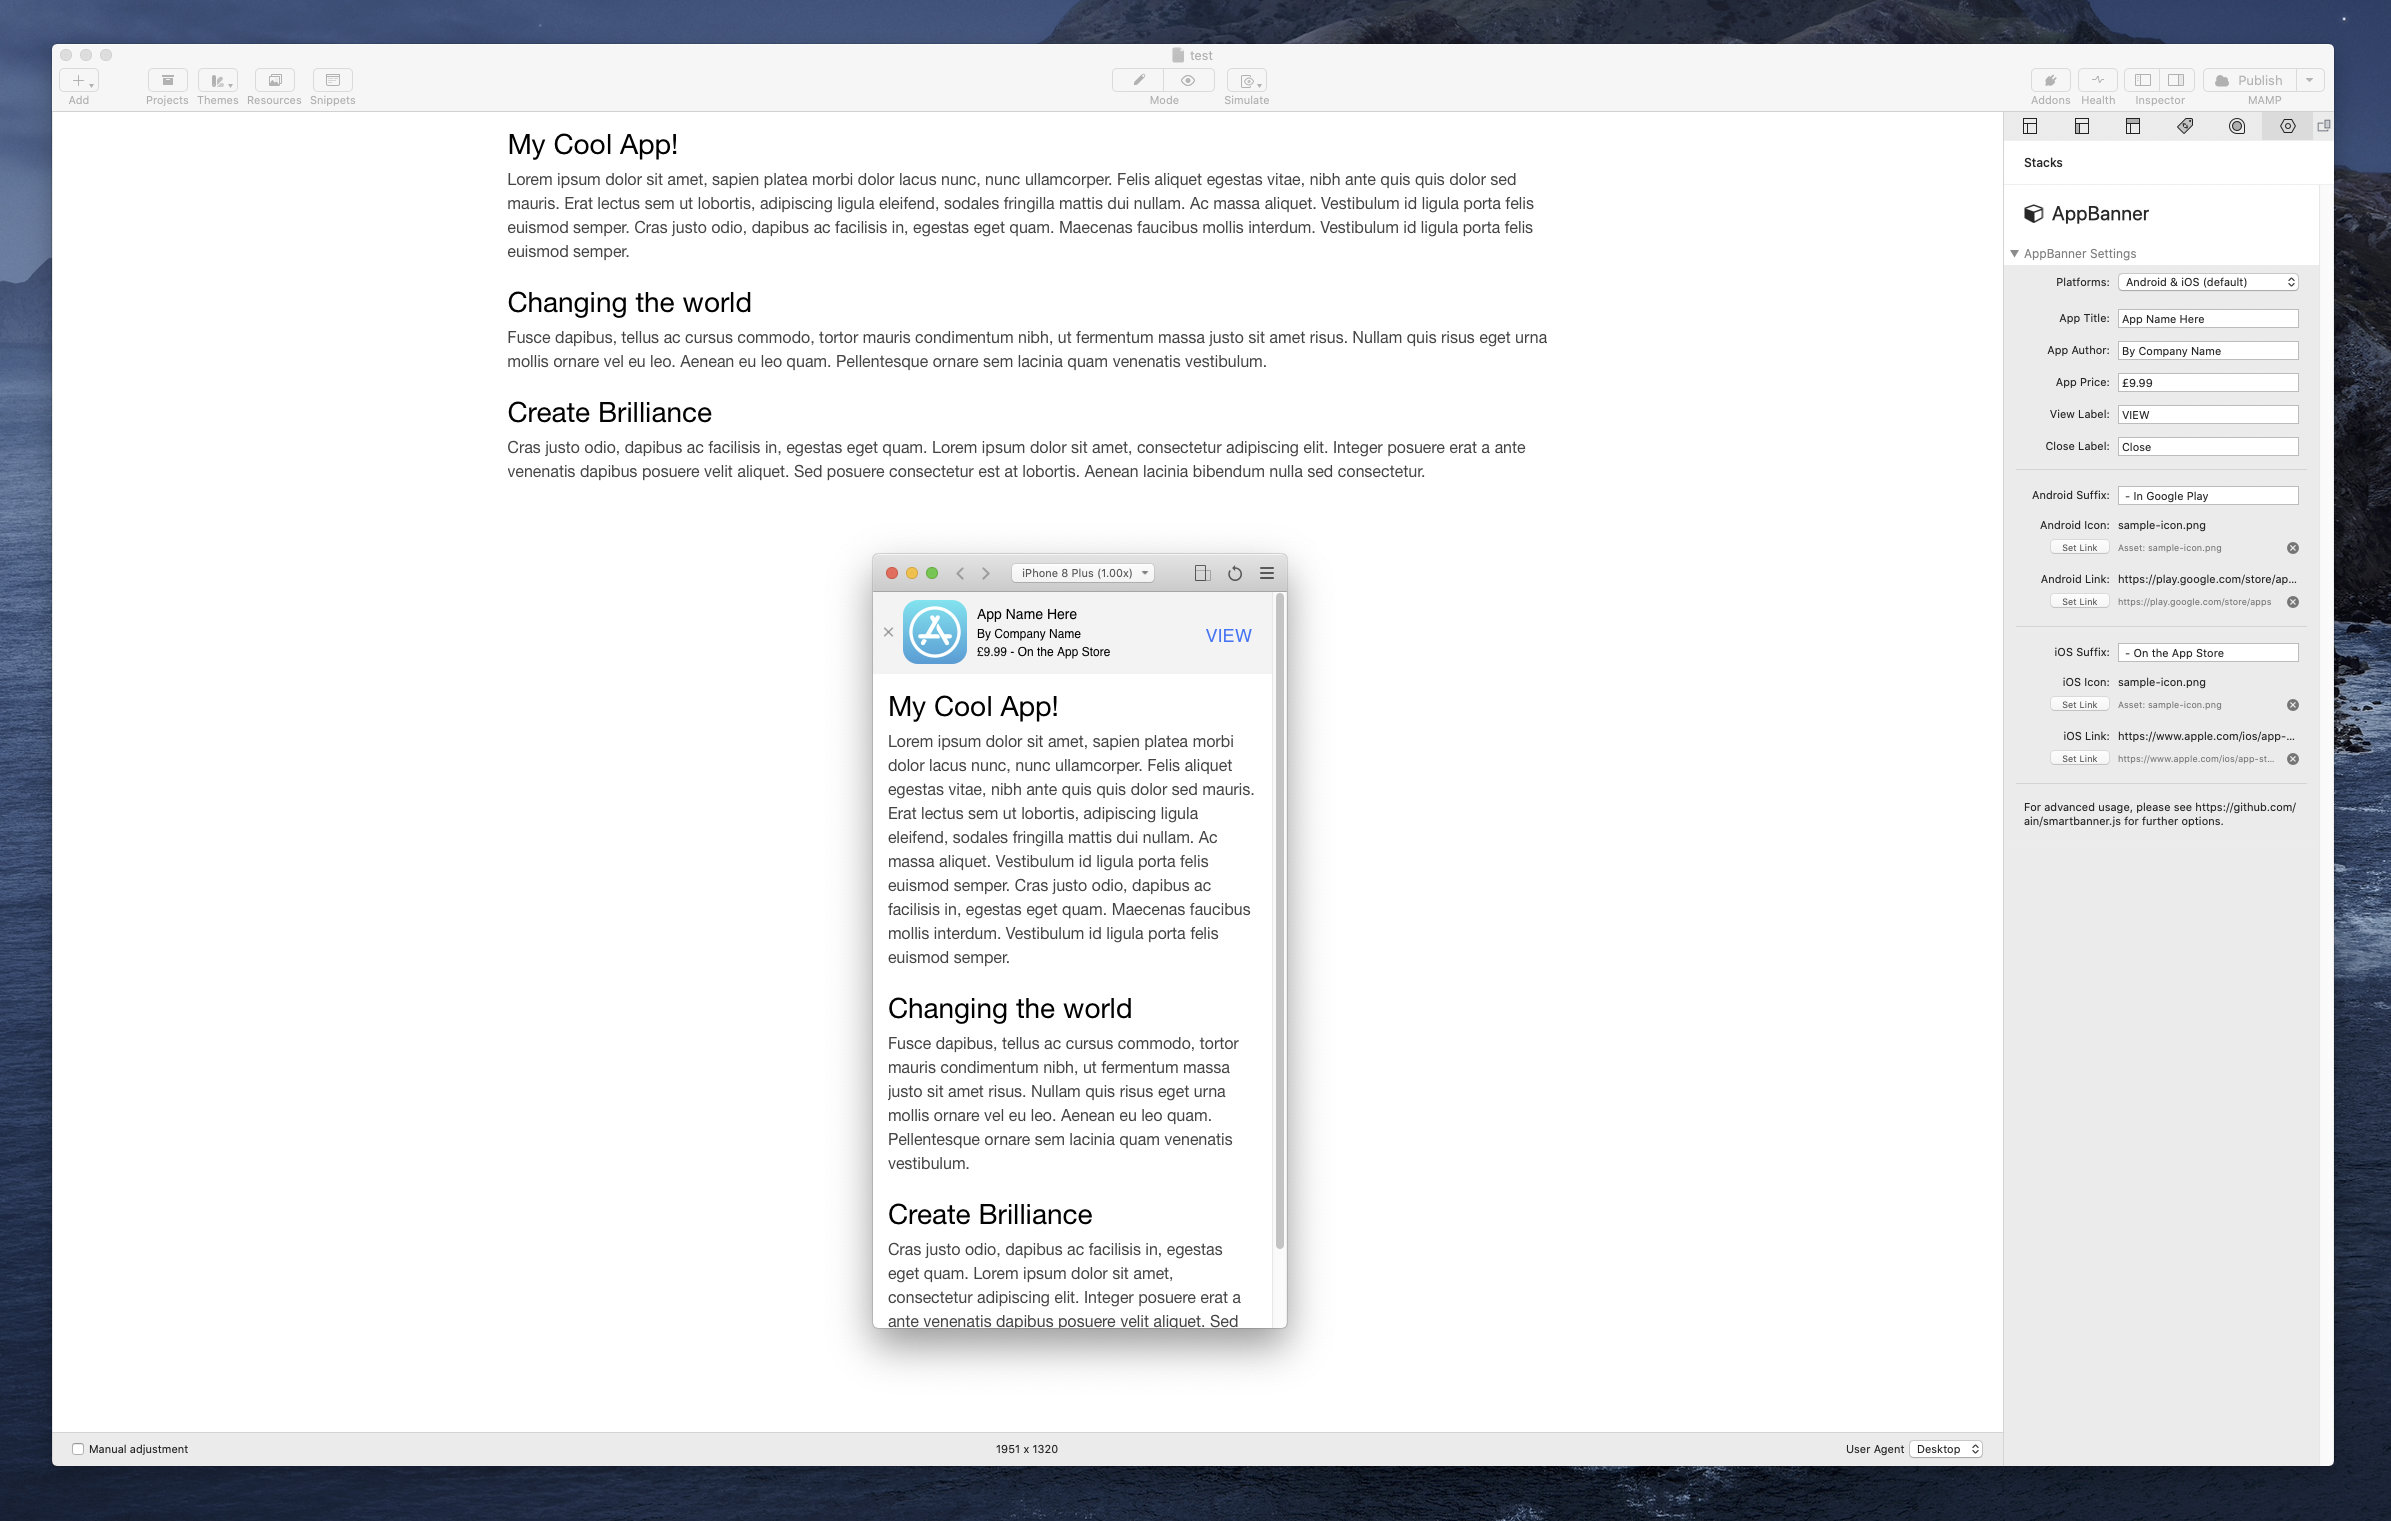 The AppBanner stack in the RapidWeaver 8 Simulator.